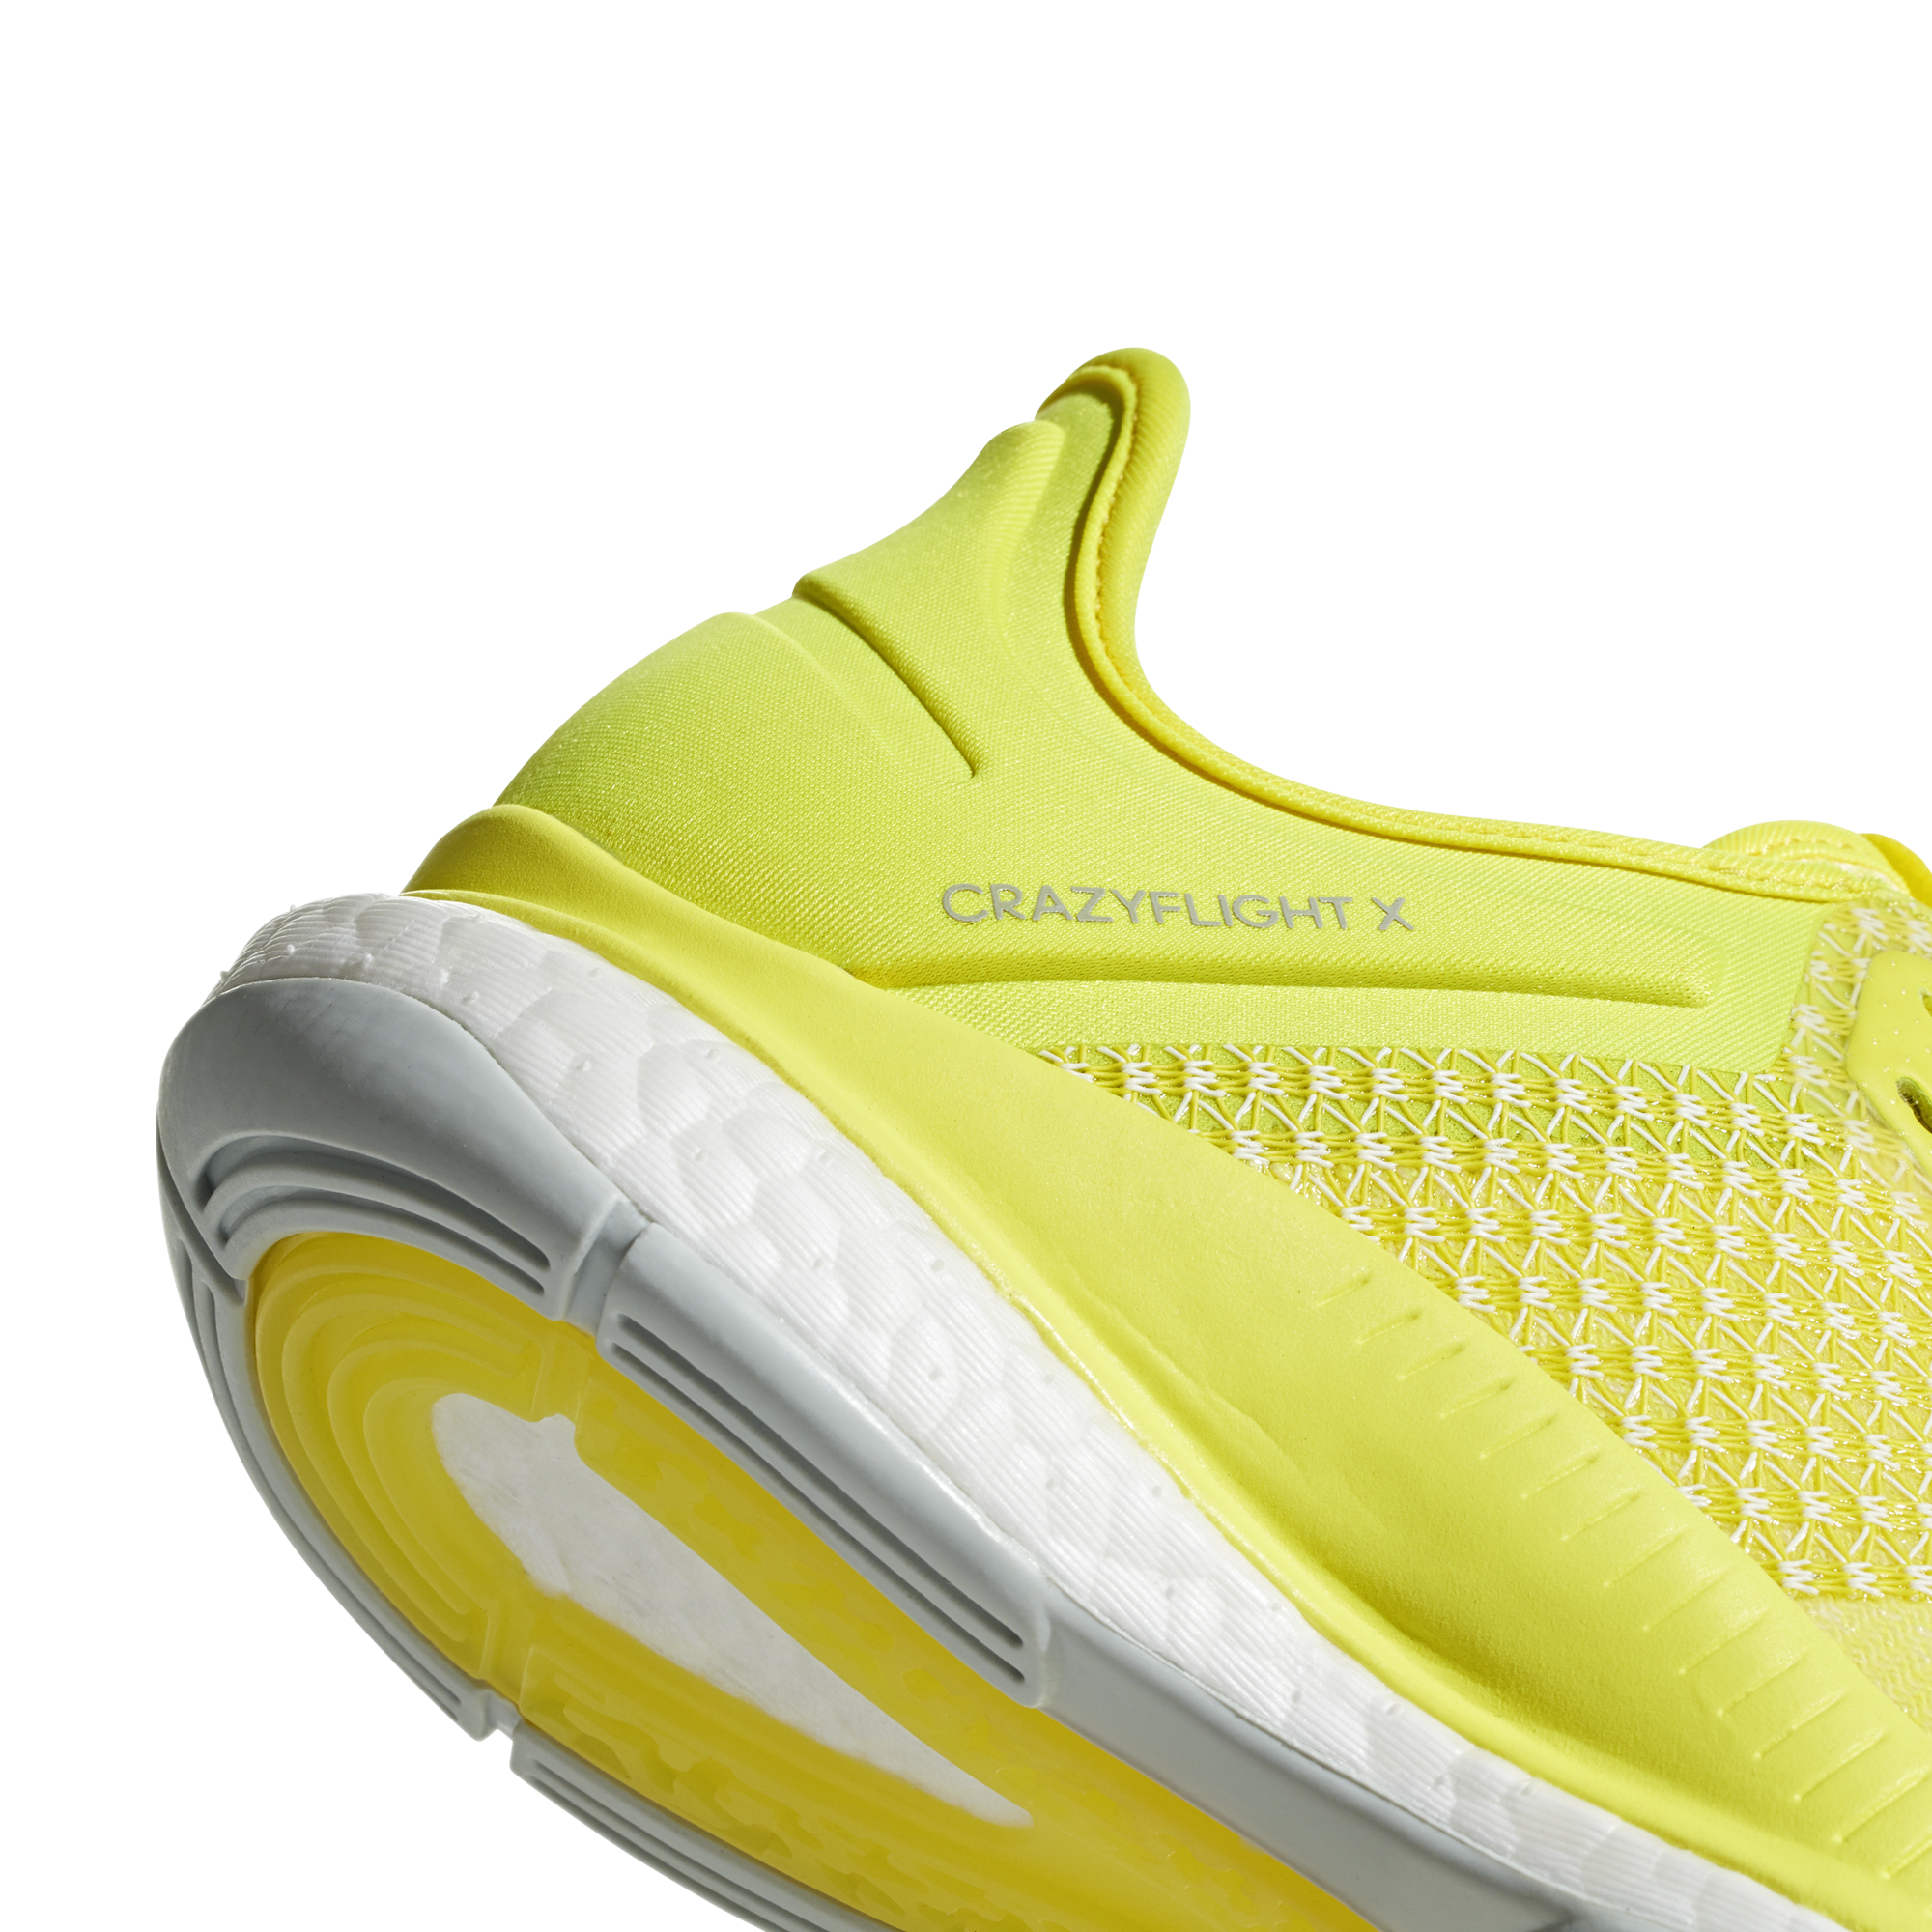 ADIDAS CRAZYFLIGHT X 2 YELLOW/ASH SILVER